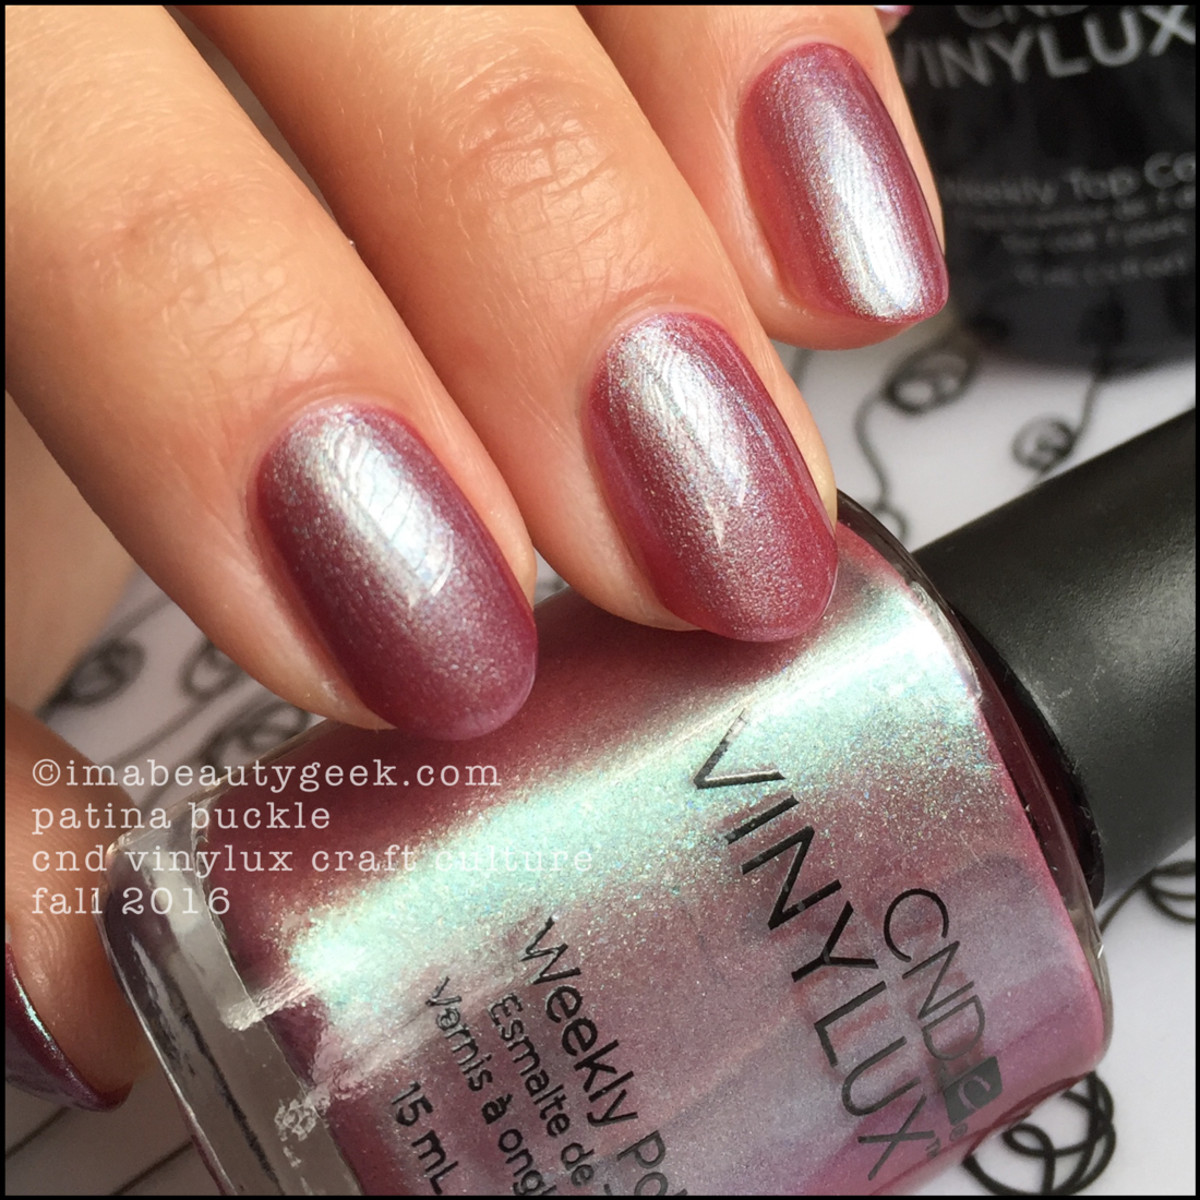 CND Vinylux Patina Buckle_CND Vinylux Craft Culture Collection Fall 2016